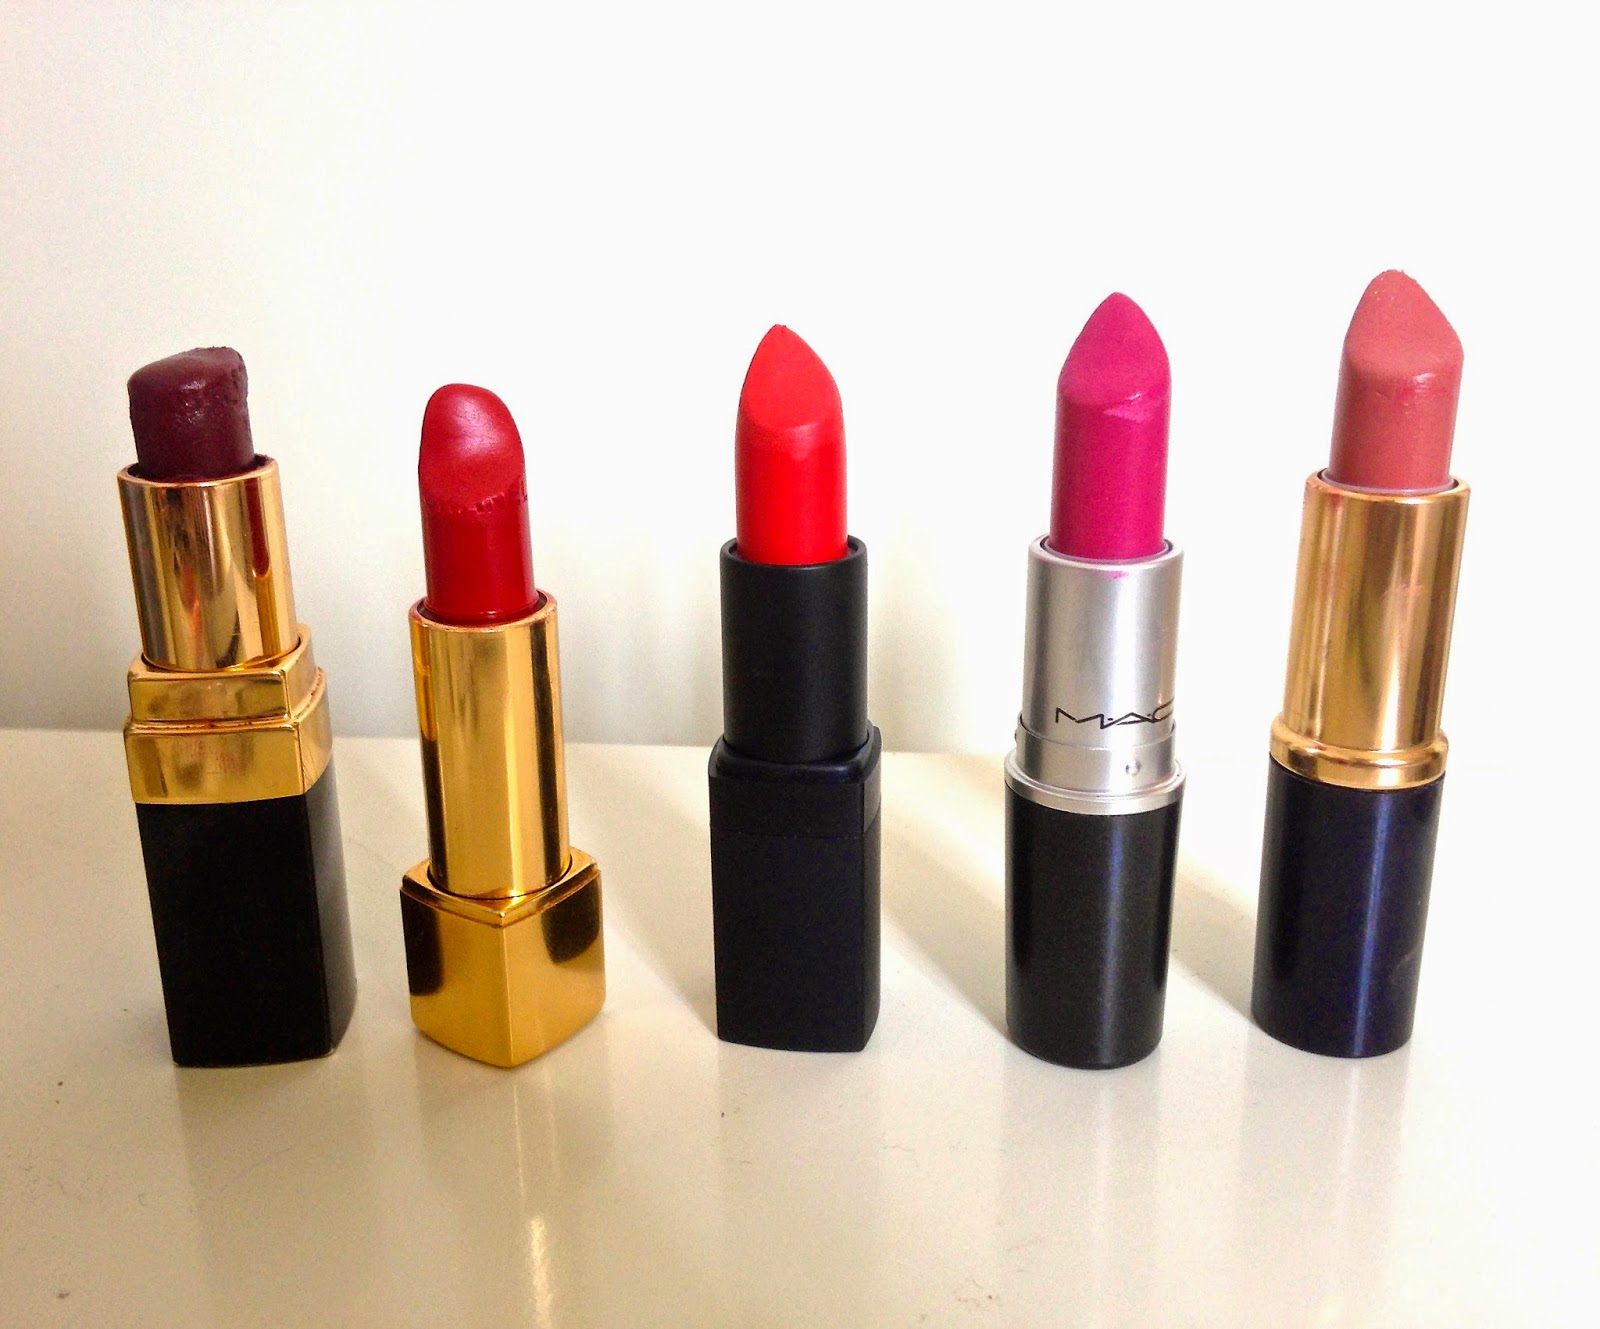 5 lipsticks in berrys, reds, pinks and nudes.